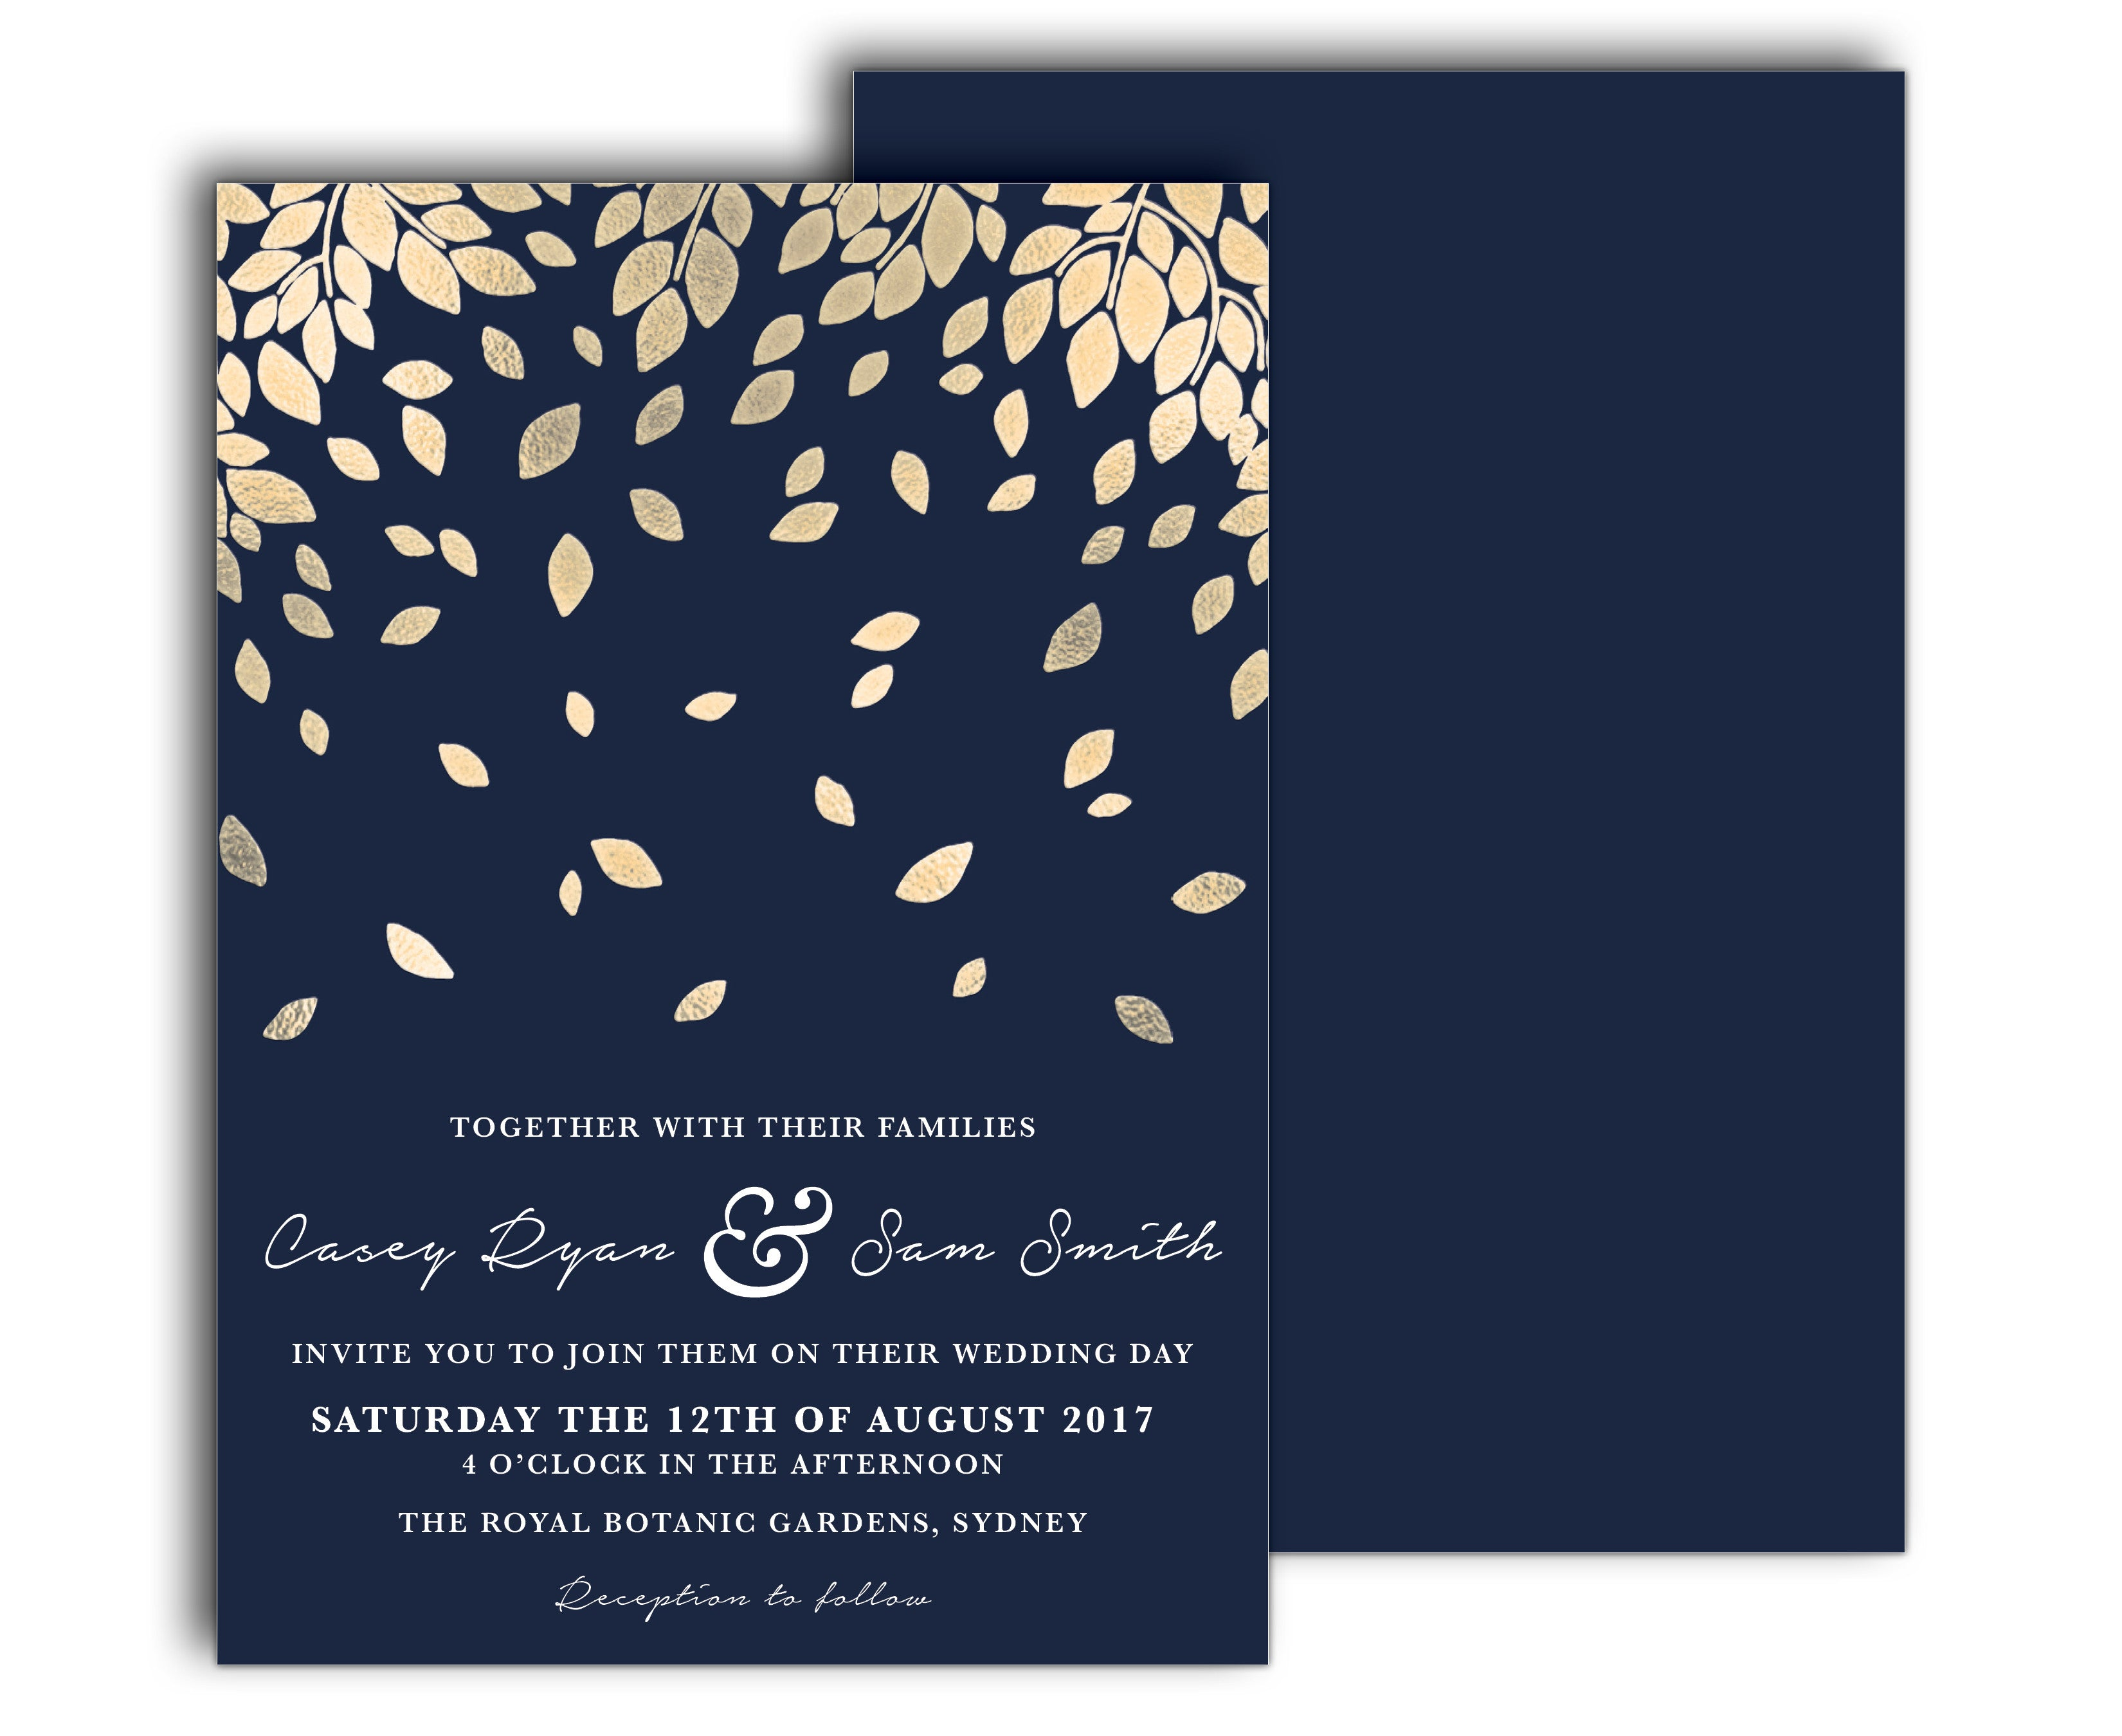 Modern wedding invitation | Gold falling leaves | navy blue background